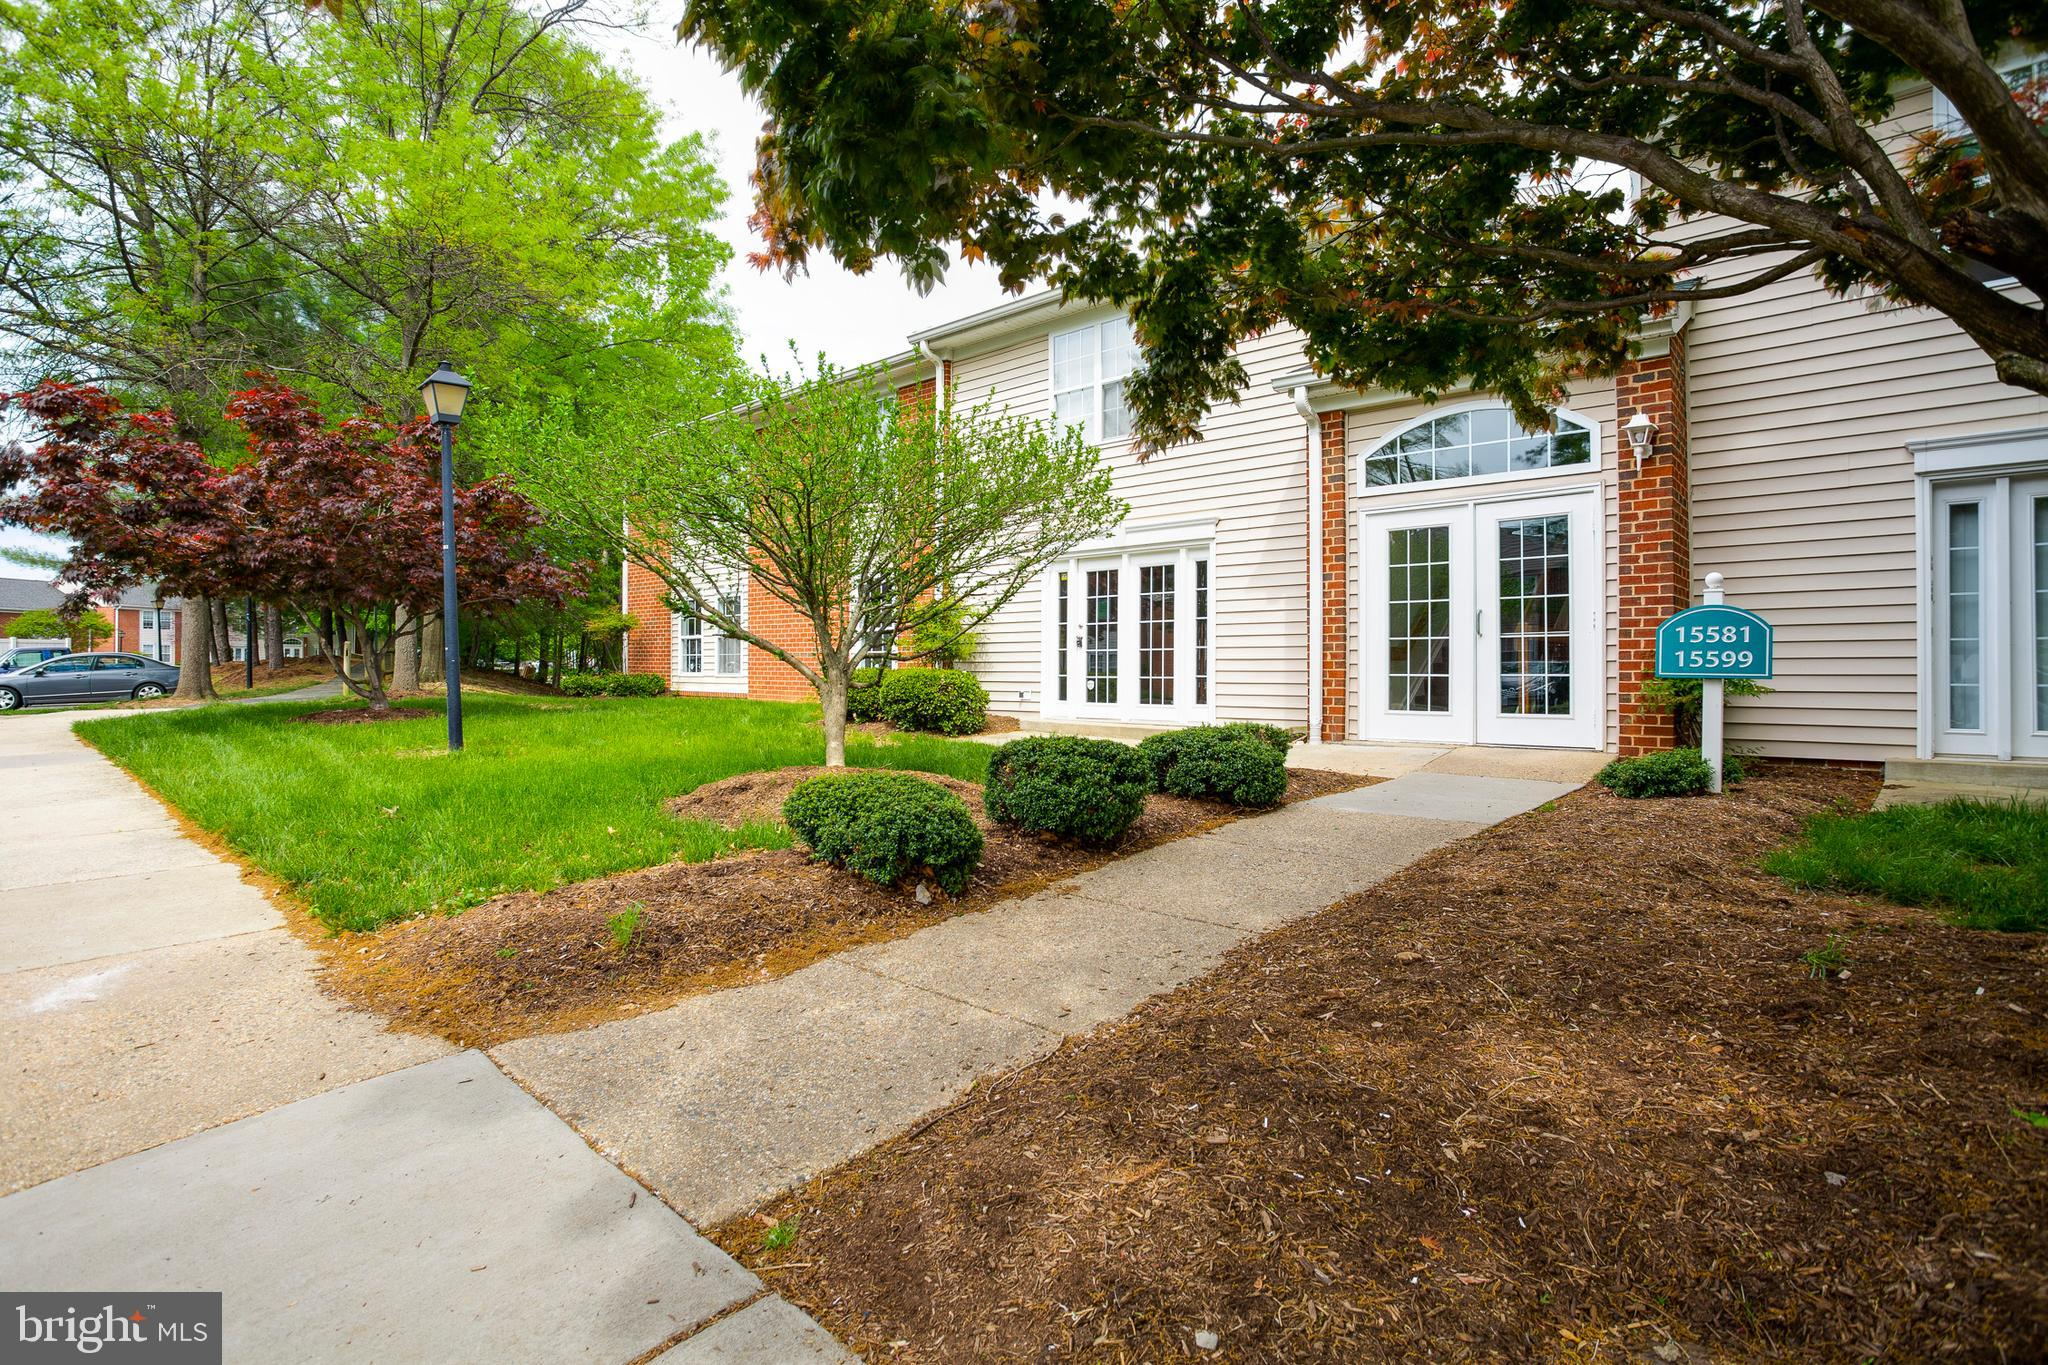 Come view this rare renovated 3BR, 2BA condo in the heart of Woodbridge. This turn-key unit has brand new carpeting and has been freshly painted throughout. The kitchen boasts stainless steel appliances, granite counters and well-maintained cabinets. The dining / living room combo maximizes the open floor plan. The location is unbeatable with quick access to I-95, Rt. 1, and the Rippon Landing VRE.  Stonebridge at Potomac Town Center is conveniently located five minutes away for all your entertainment / shopping needs.